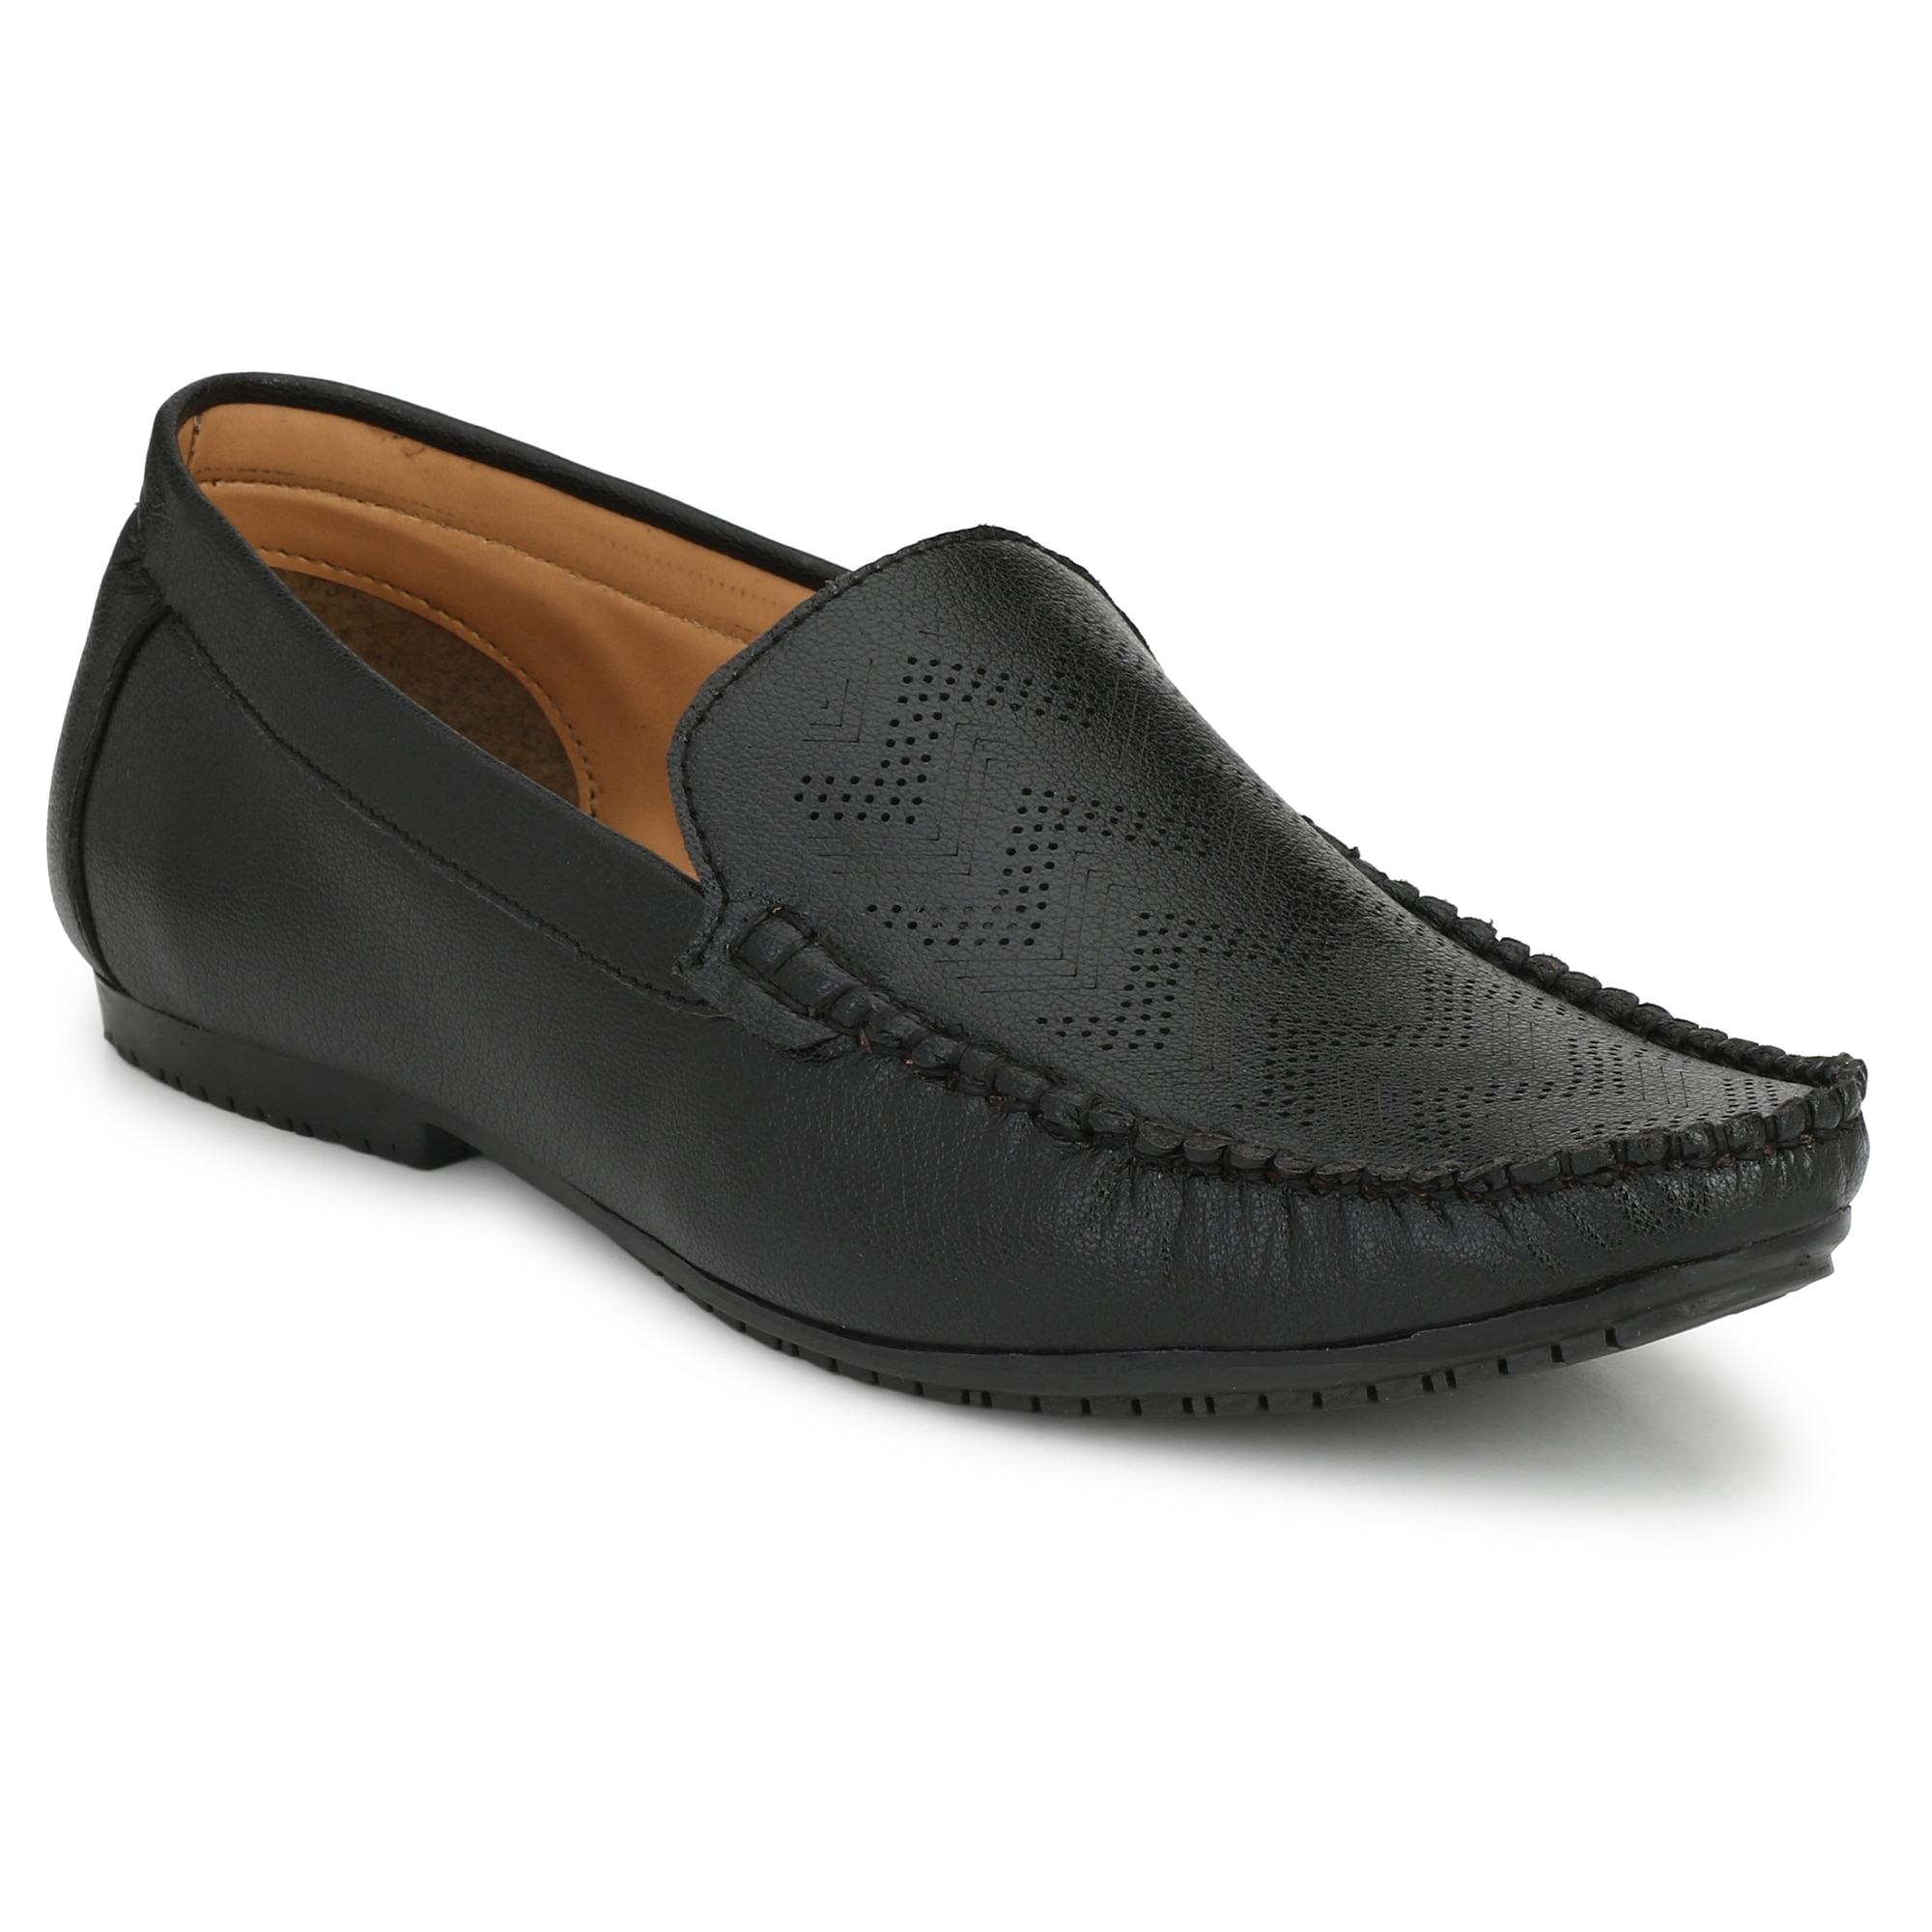 Trendigo Men Black Loafer